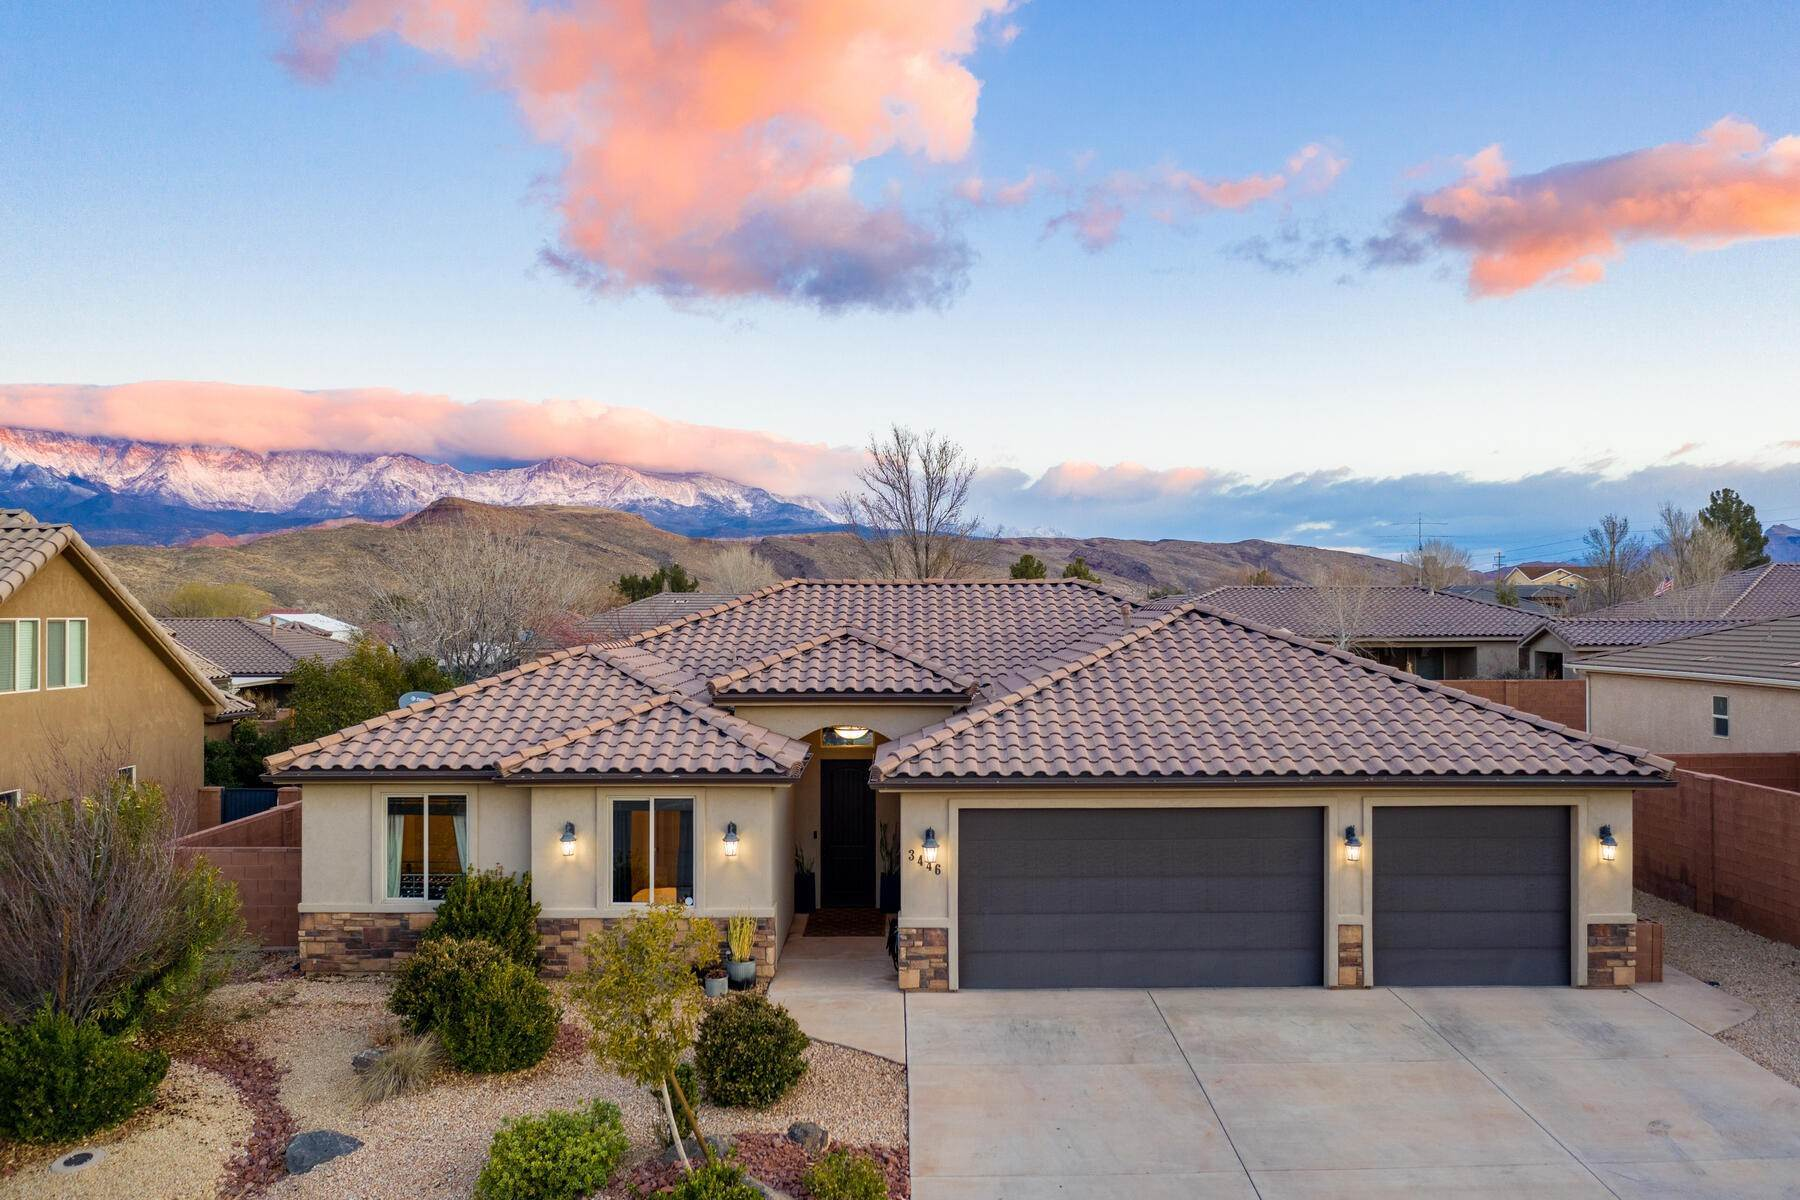 Single Family Homes for Sale at Artistically Inspired Backyard Experience Comes With An Amazing Home 3446 West 200 North Hurricane, Utah 84737 United States